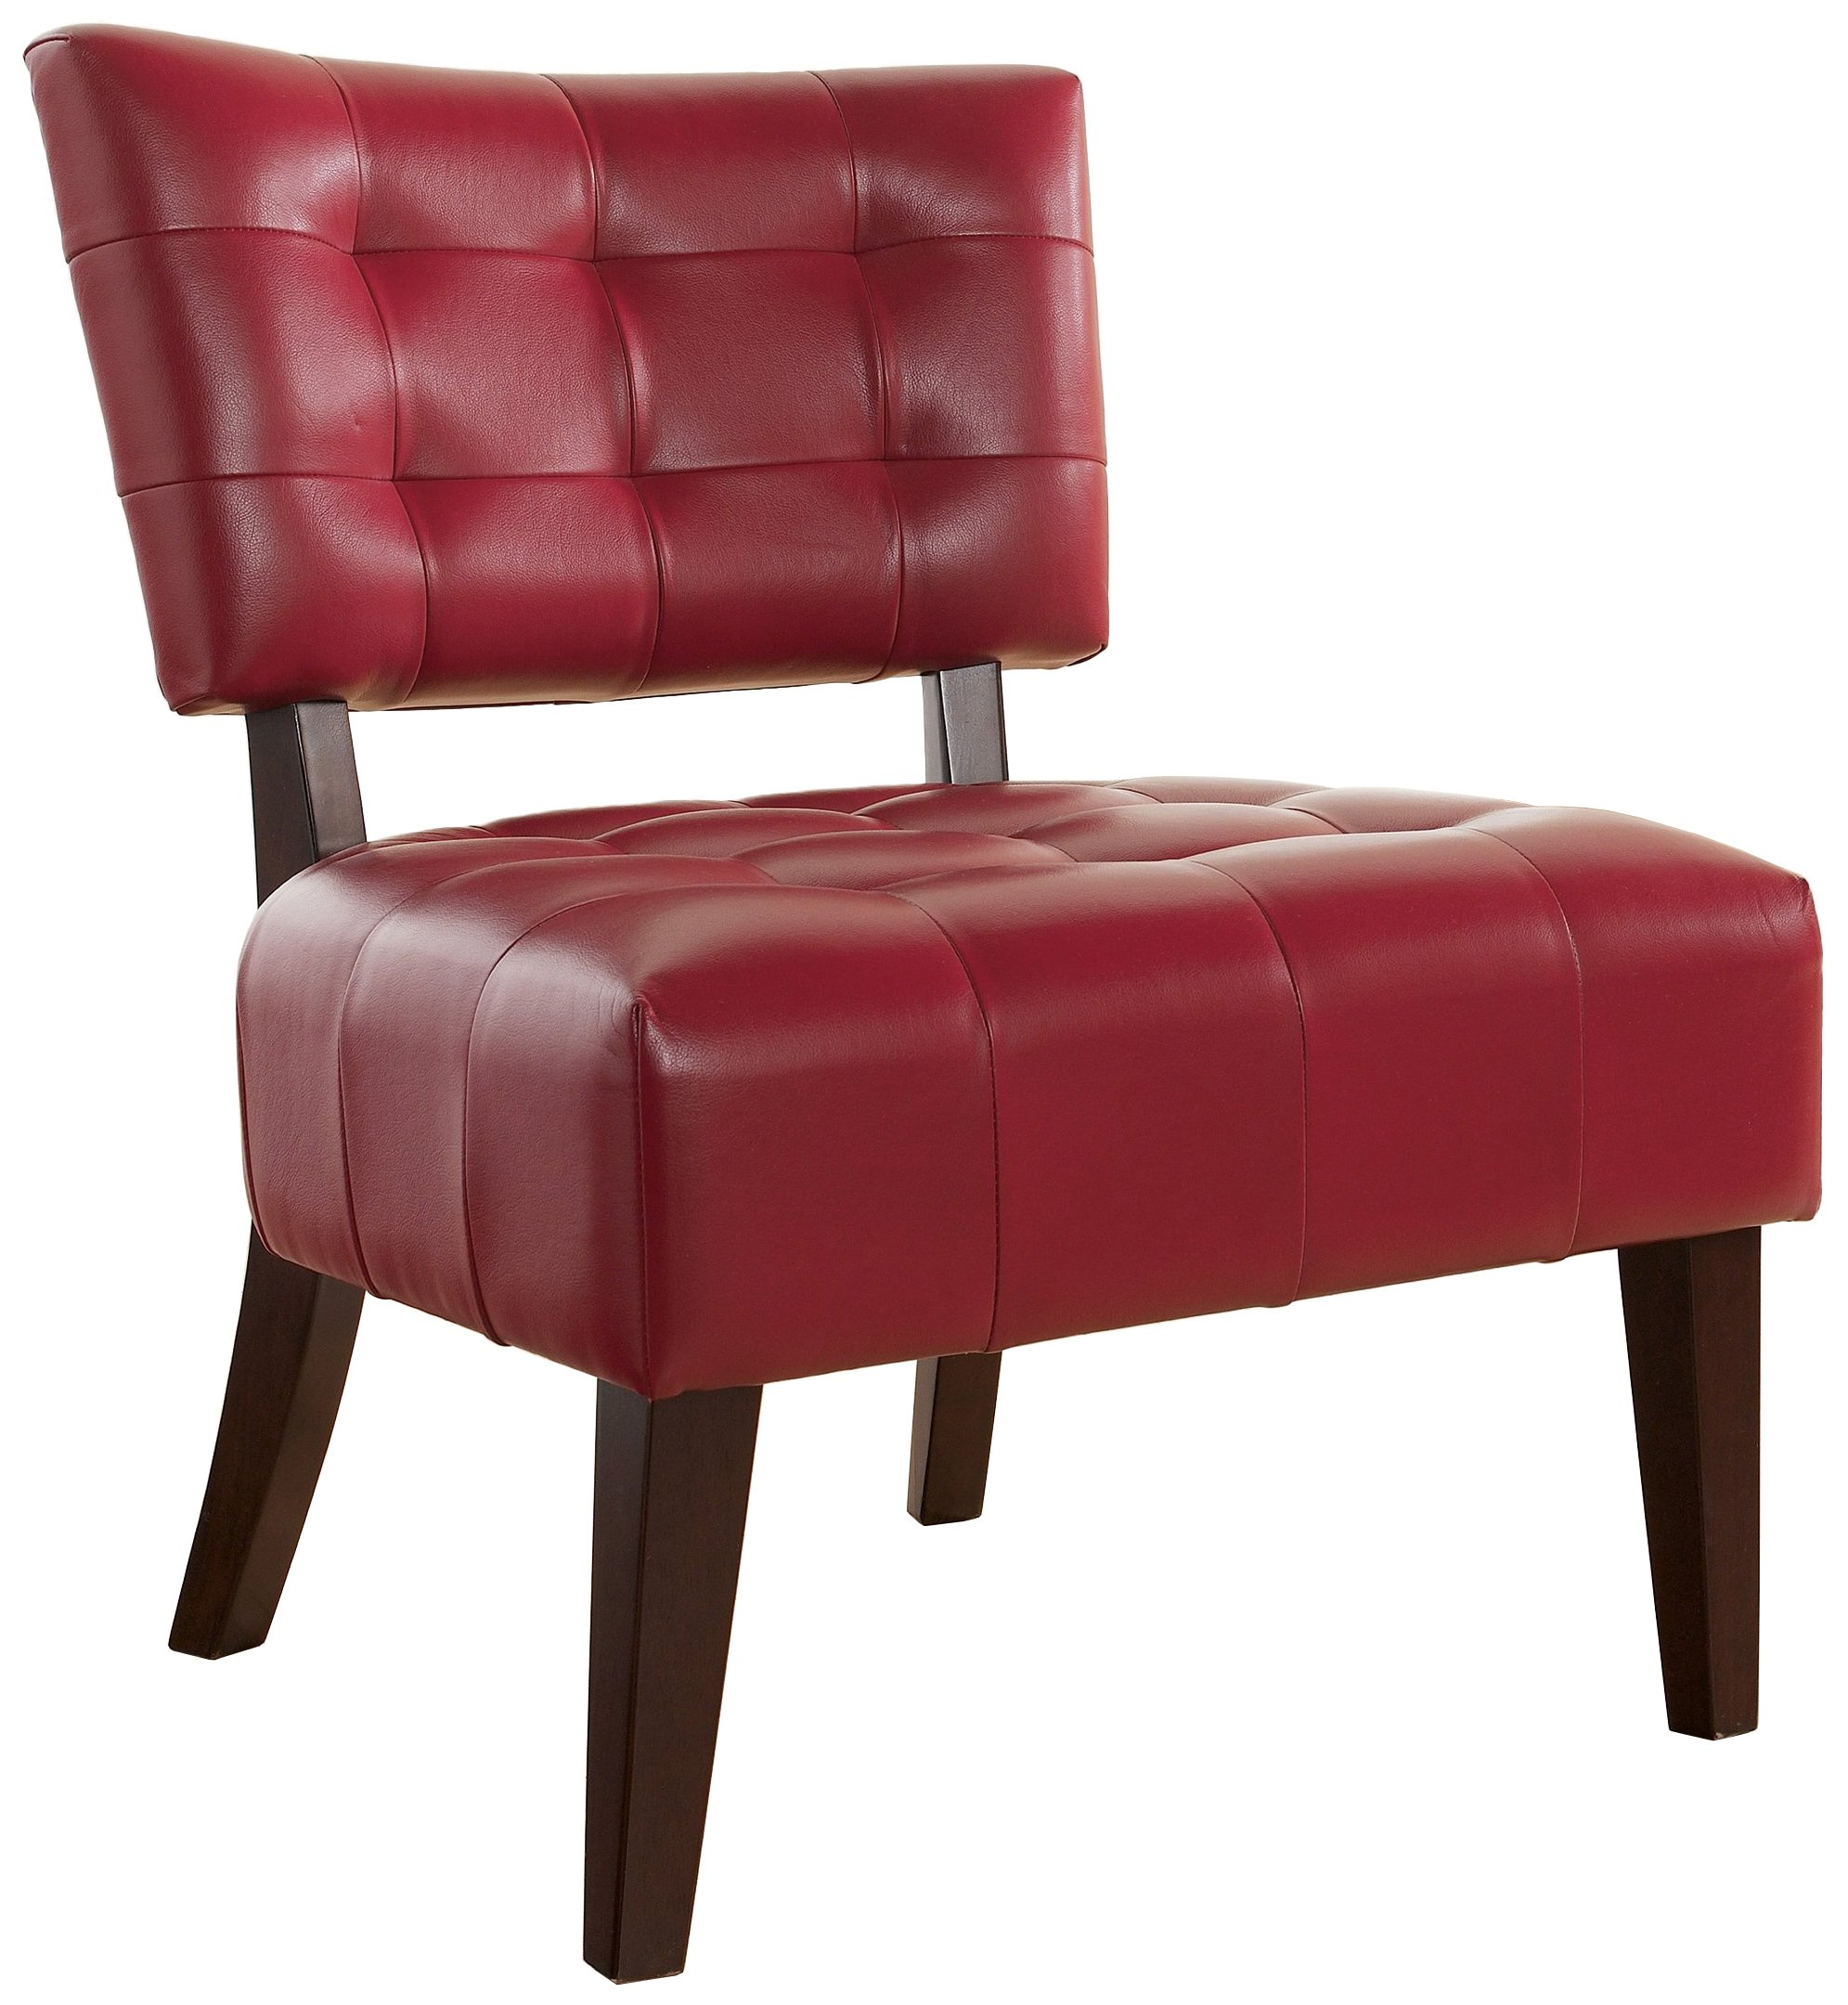 Roundhill Furniture Blended Leather Tufted Accent Chair with Oversized Seating by Roundhill Furniture